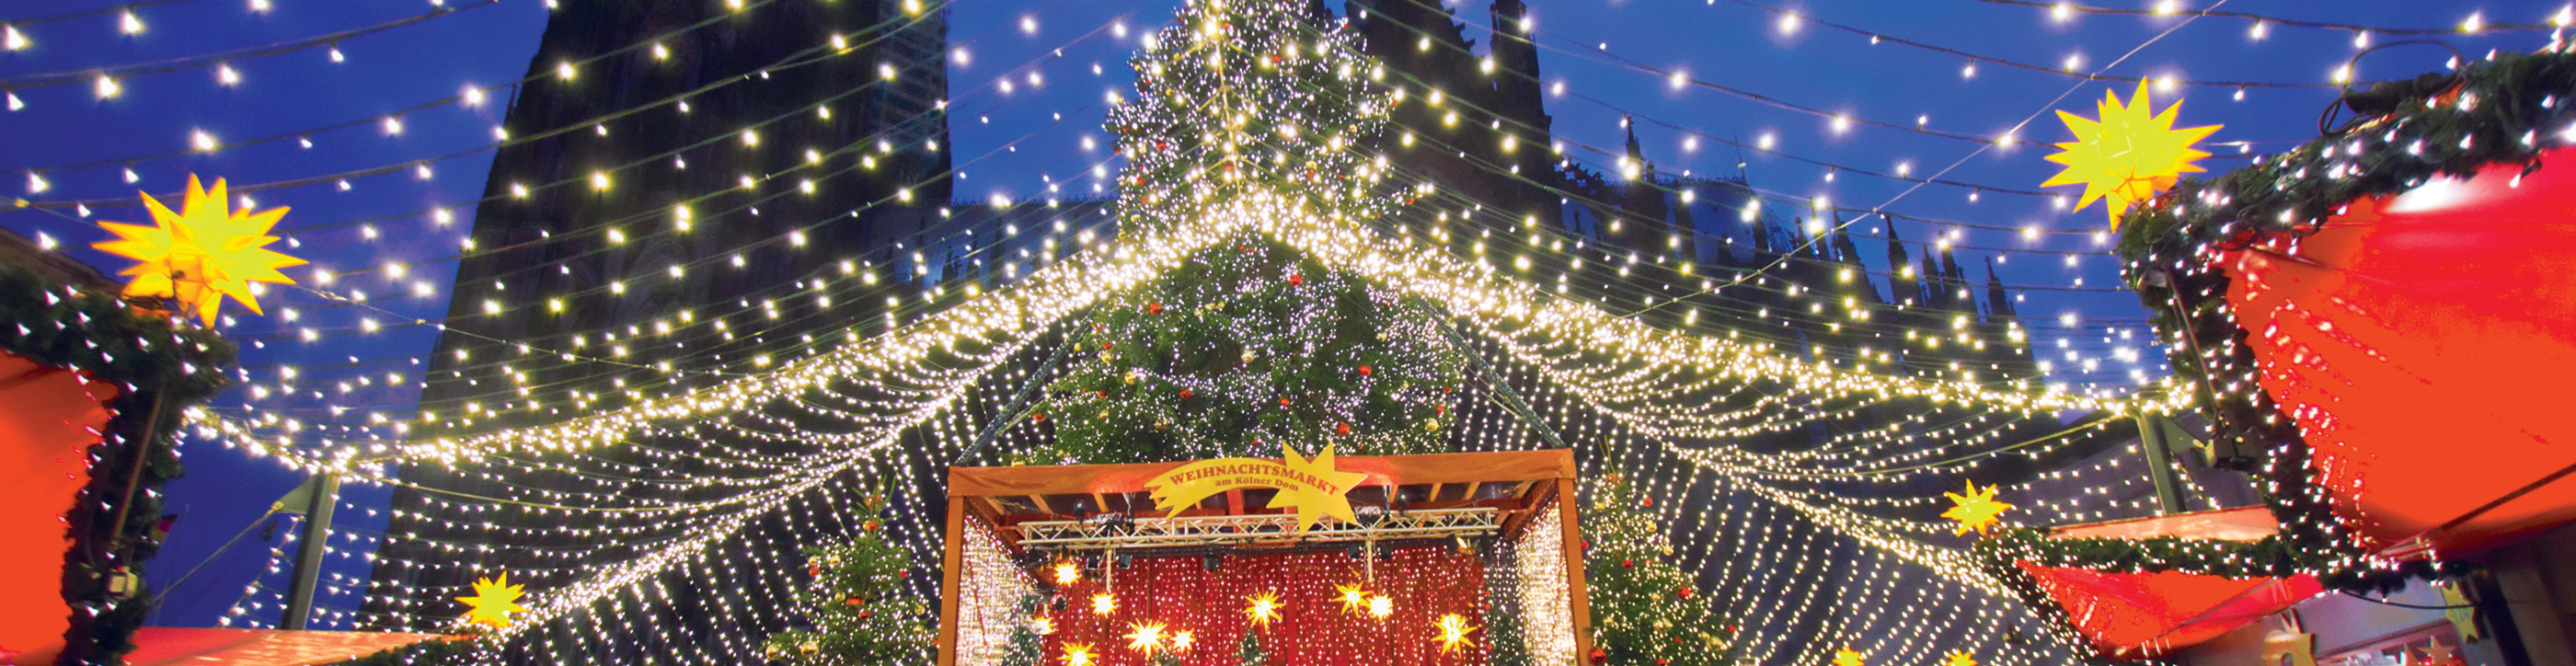 Photograph of Rhine Holiday Markets